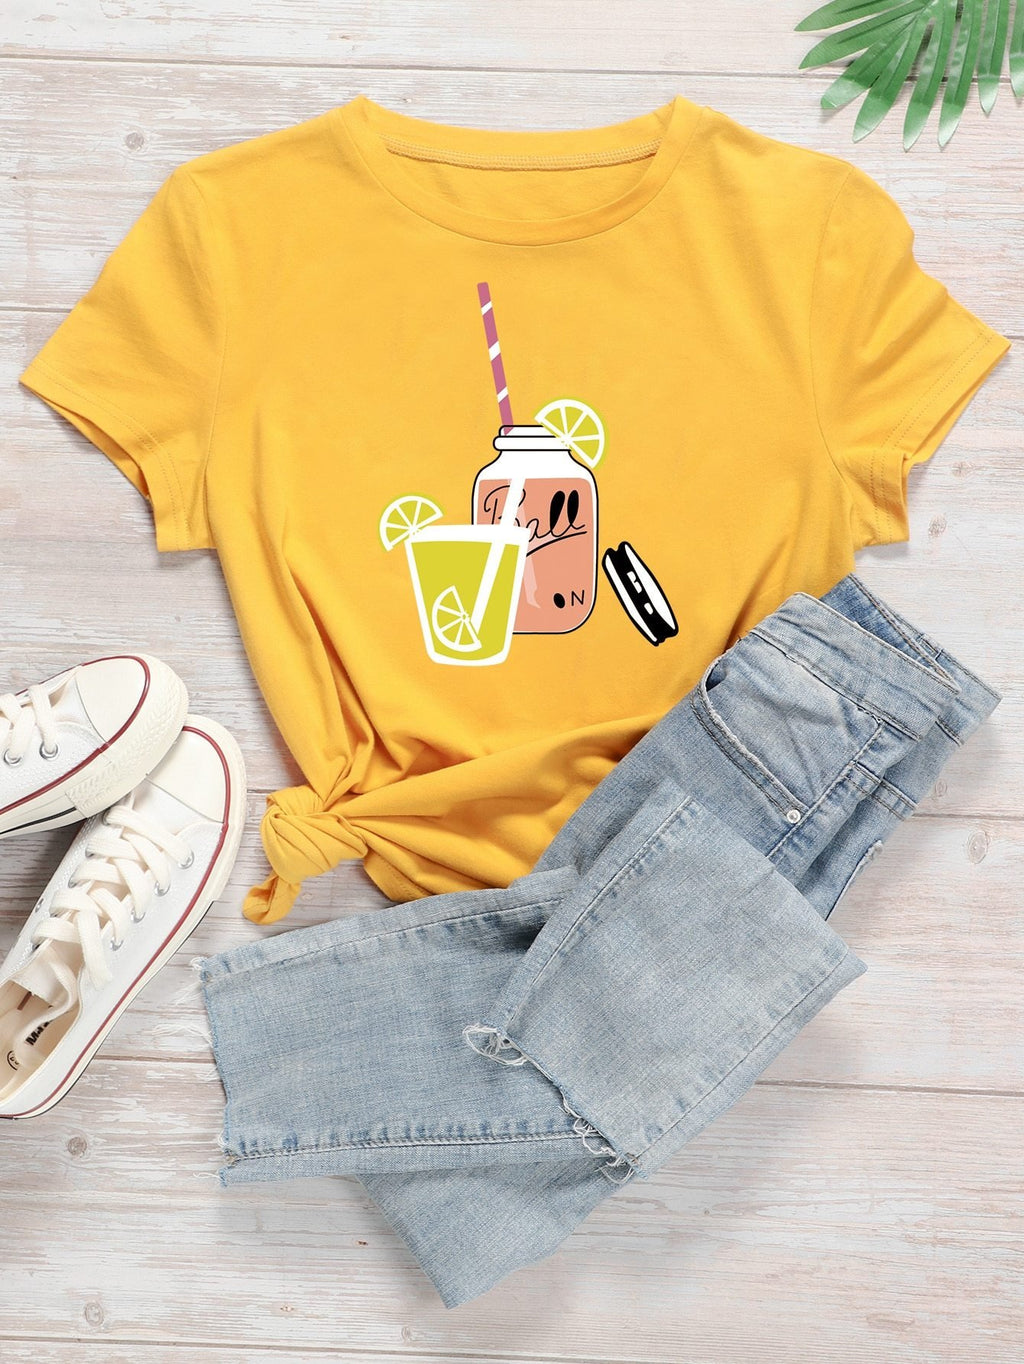 Cartoon Juice And Letter Graphic Tee - INS | Online Fashion Free Shipping Clothing, Dresses, Tops, Shoes